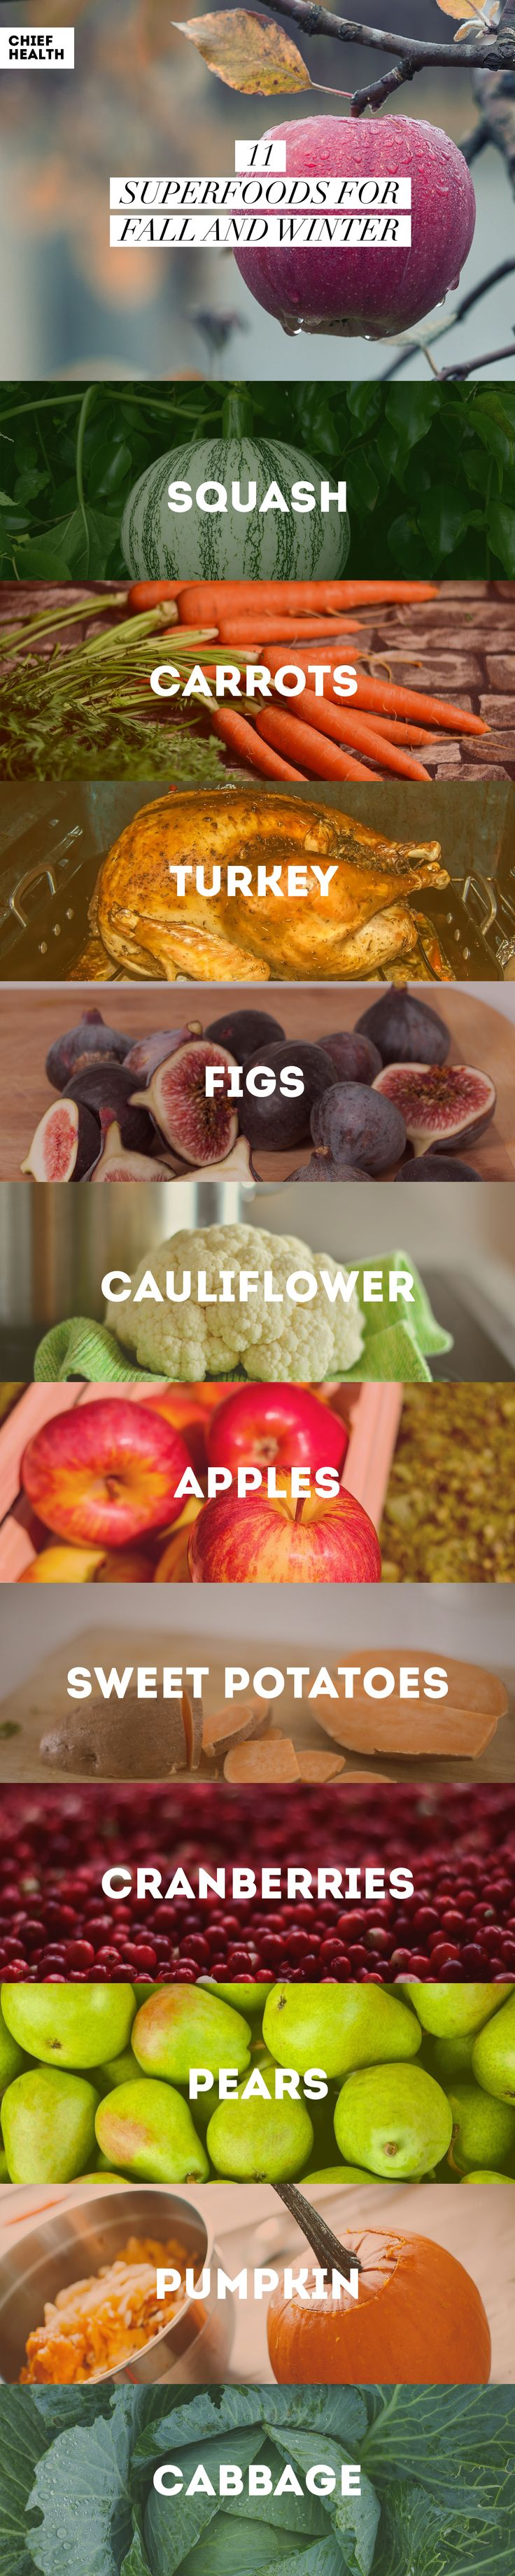 The weather is cooling off, and the meals are heating up as many produce options come into season. Take a look at these 11 foods you need to grab the next time you visit the grocery store.